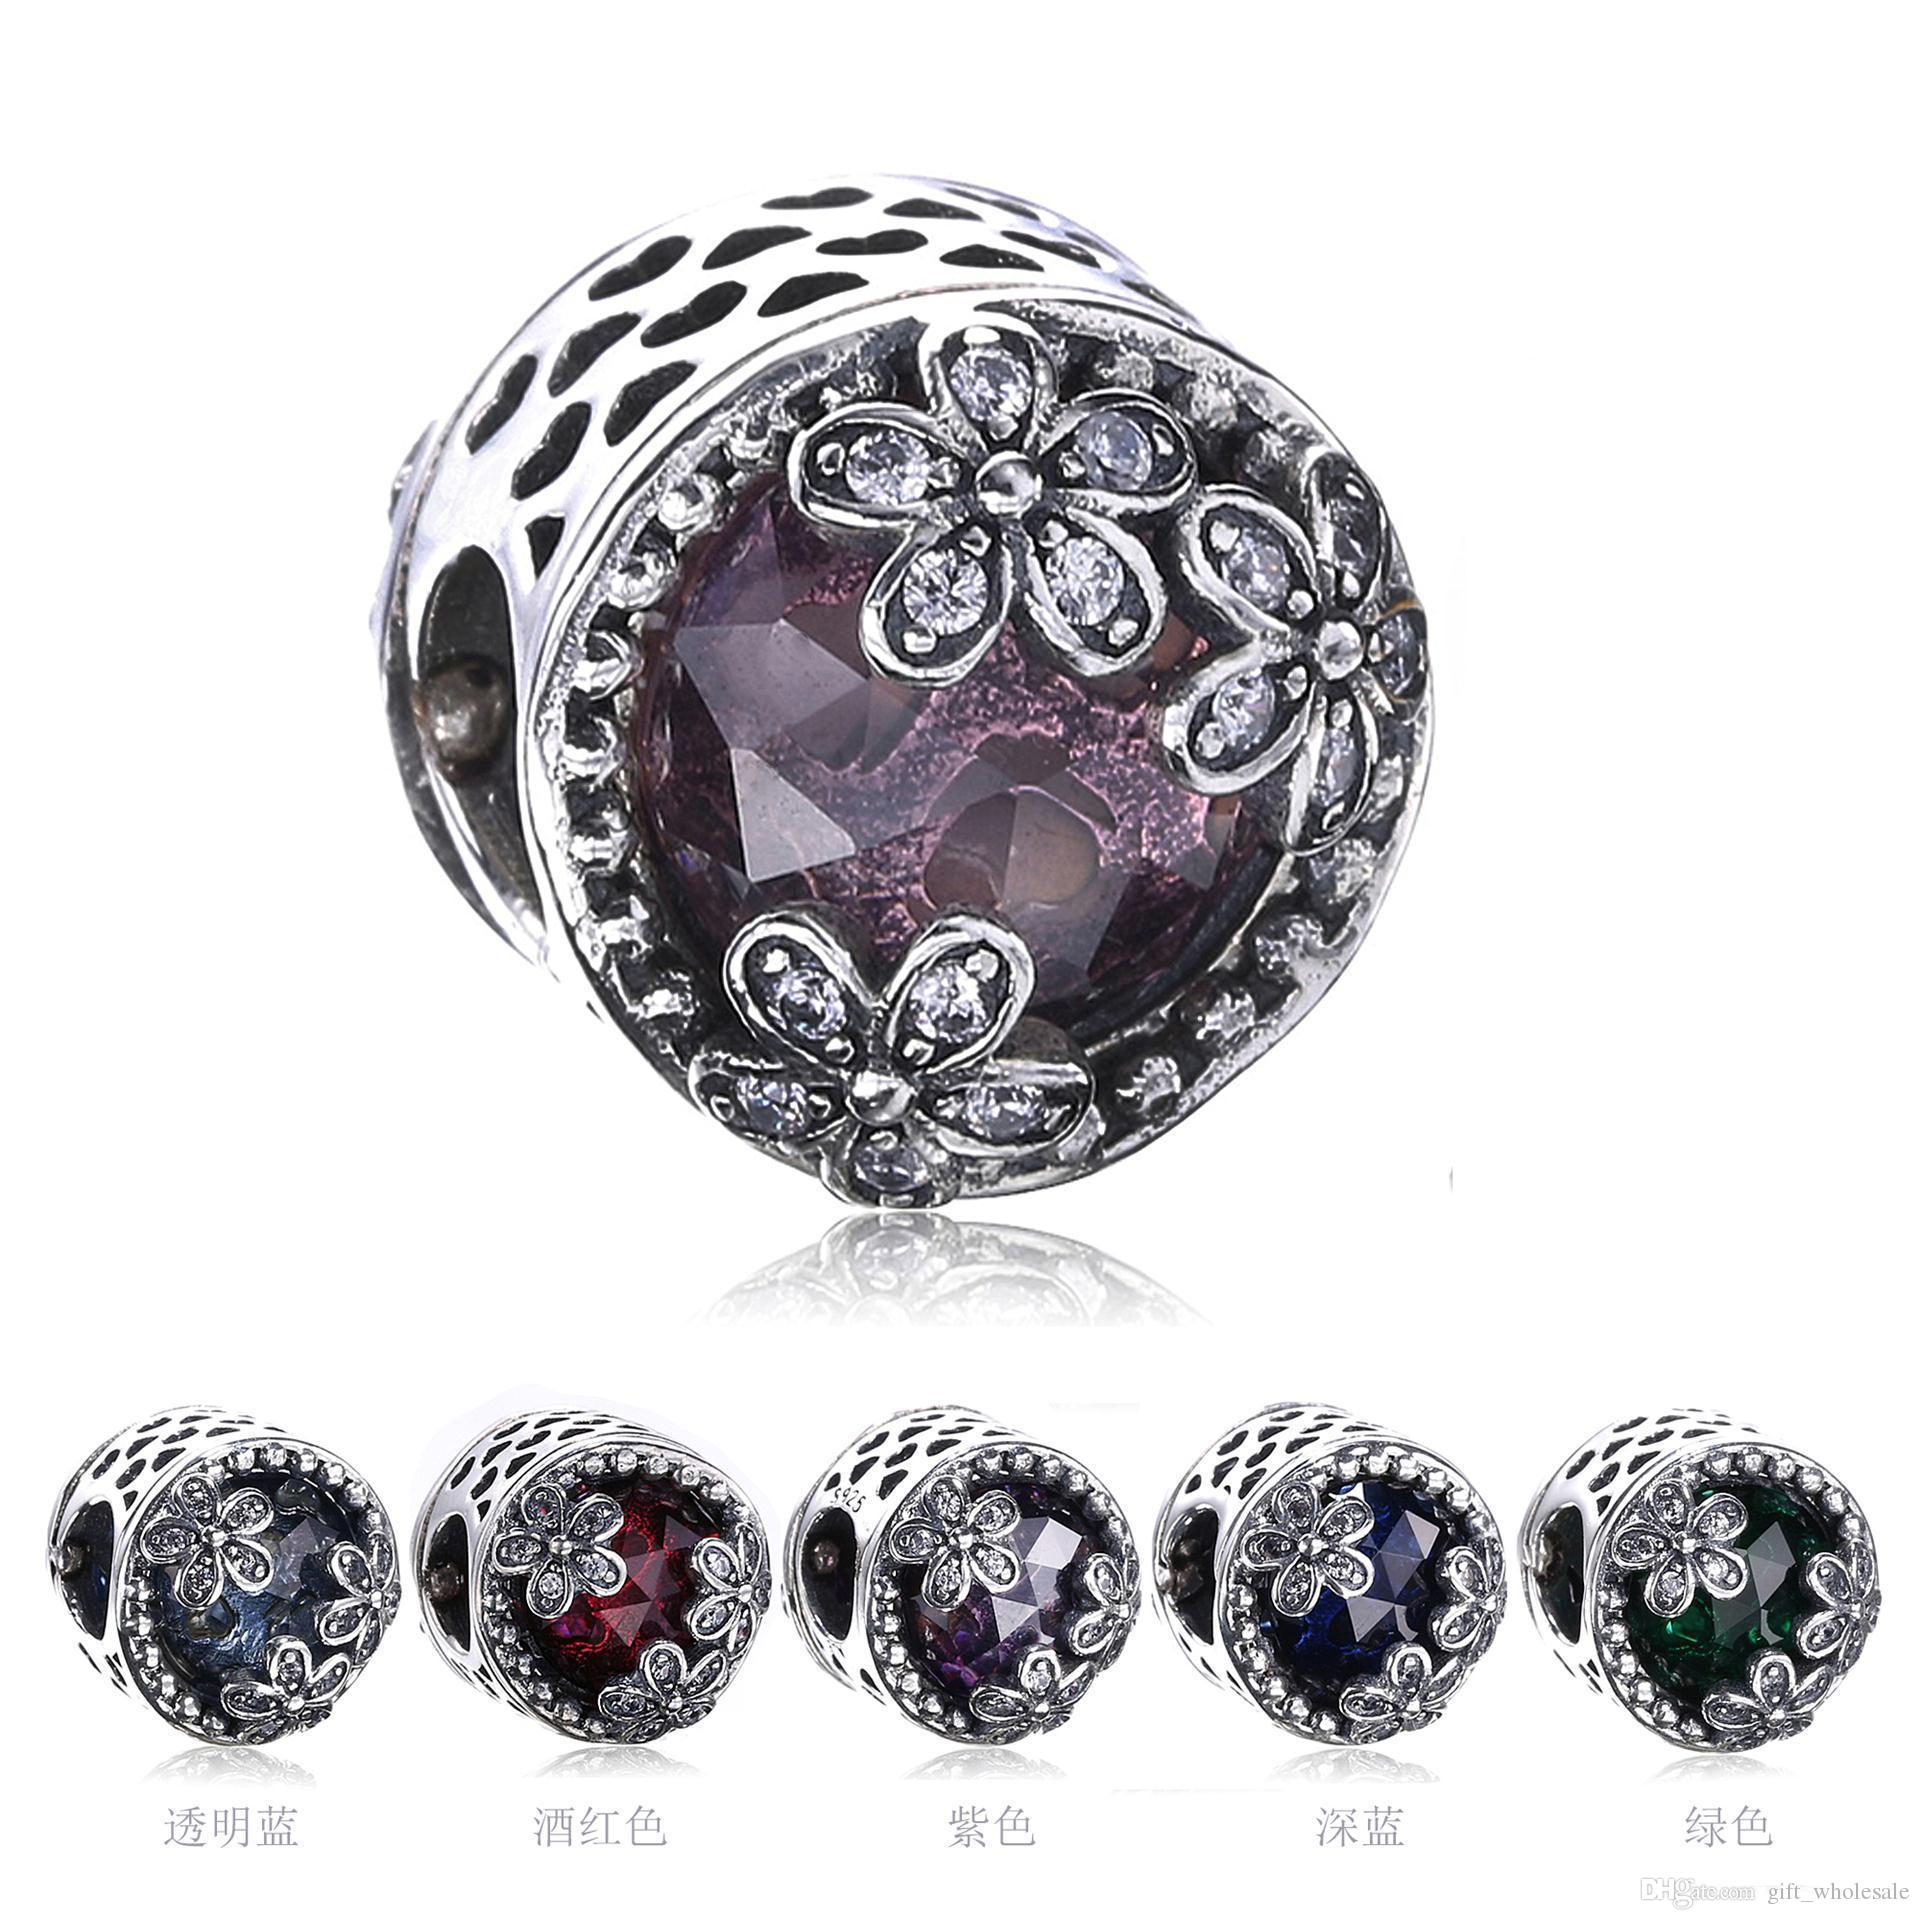 New Authentic Real 925 Sterling Silver Floral Cubic Zirconia European Charms Bead Fit Pandora Chain Bracelet DIY Fashion Jewelry 925 Sterling Silver Charms